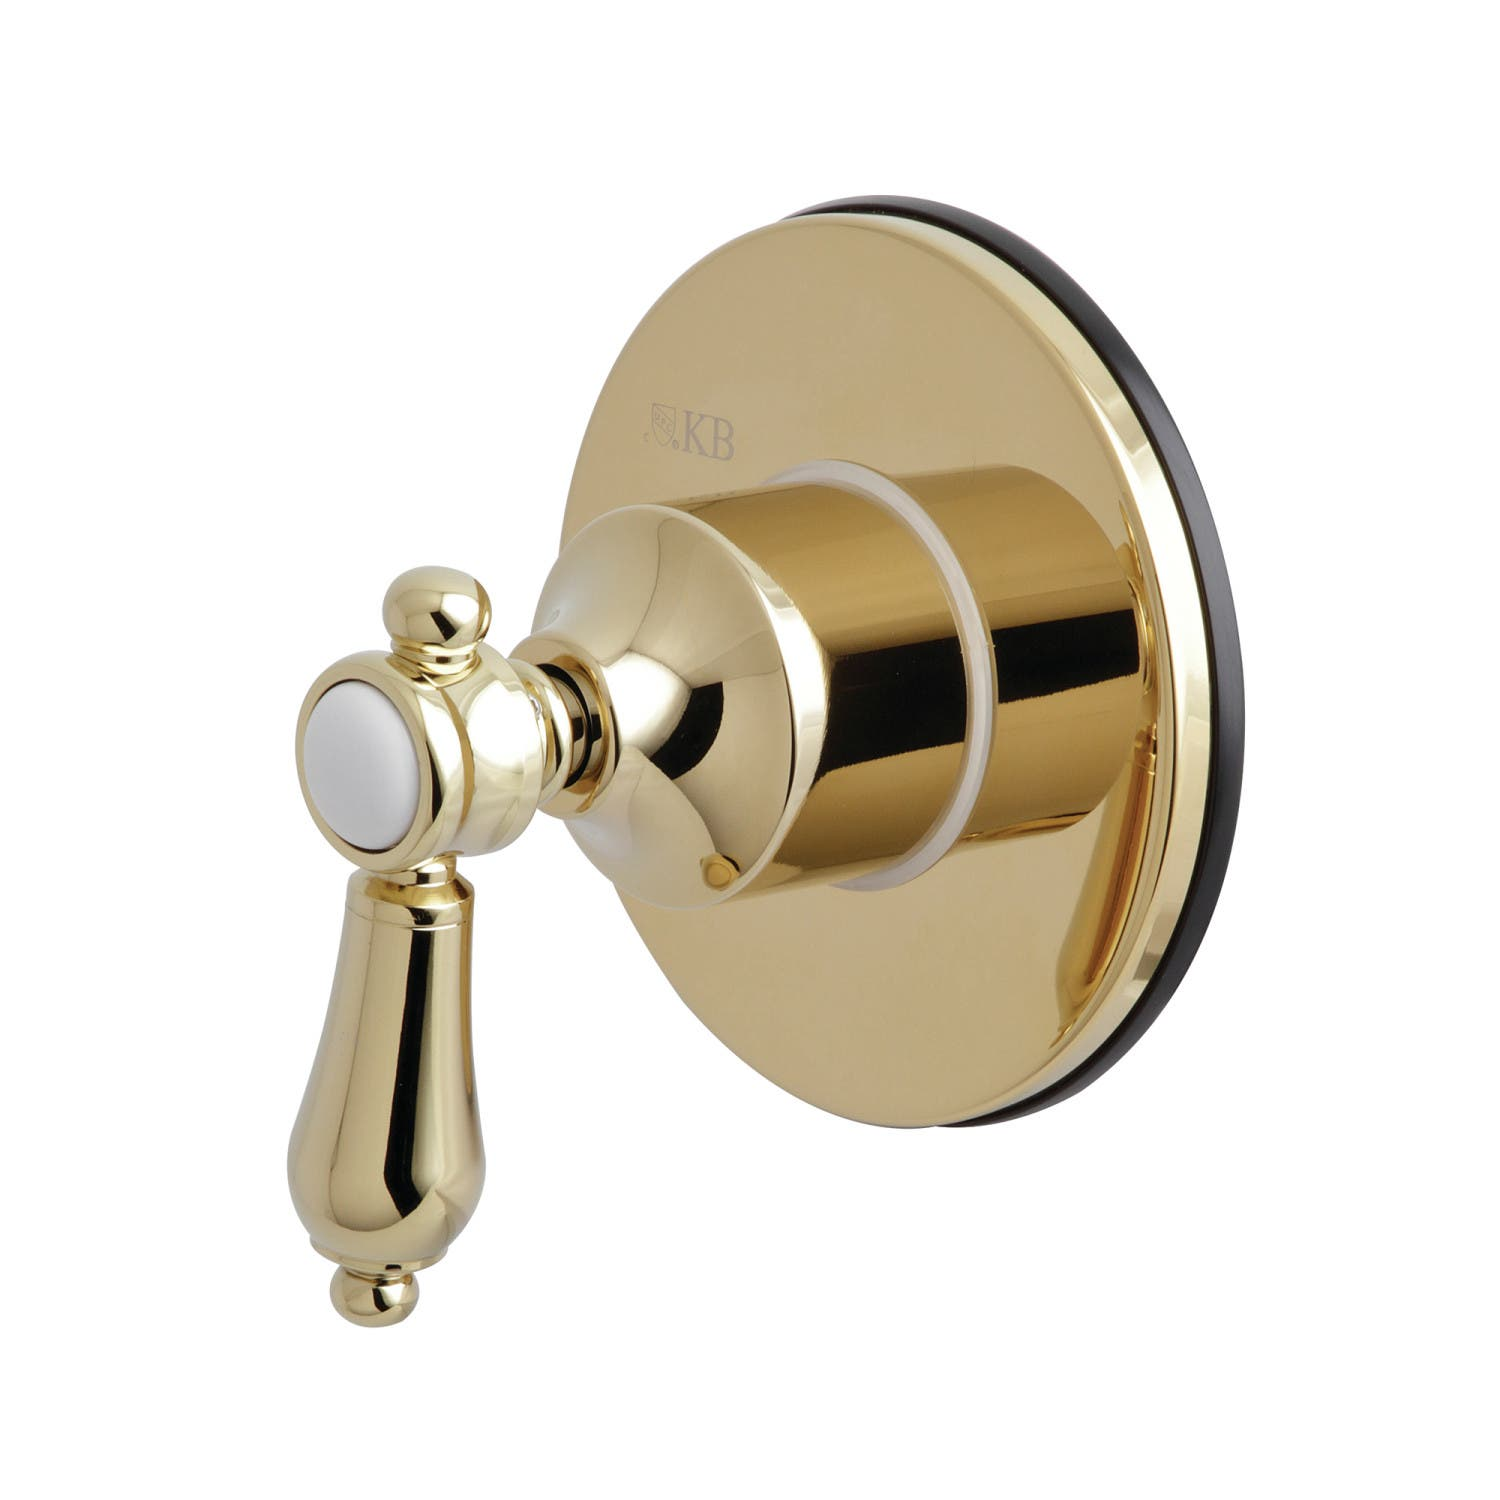 Kingston Brass KS3032BAL Three-Way Diverter Valve with Single-Handle and Round Plate, Polished Brass